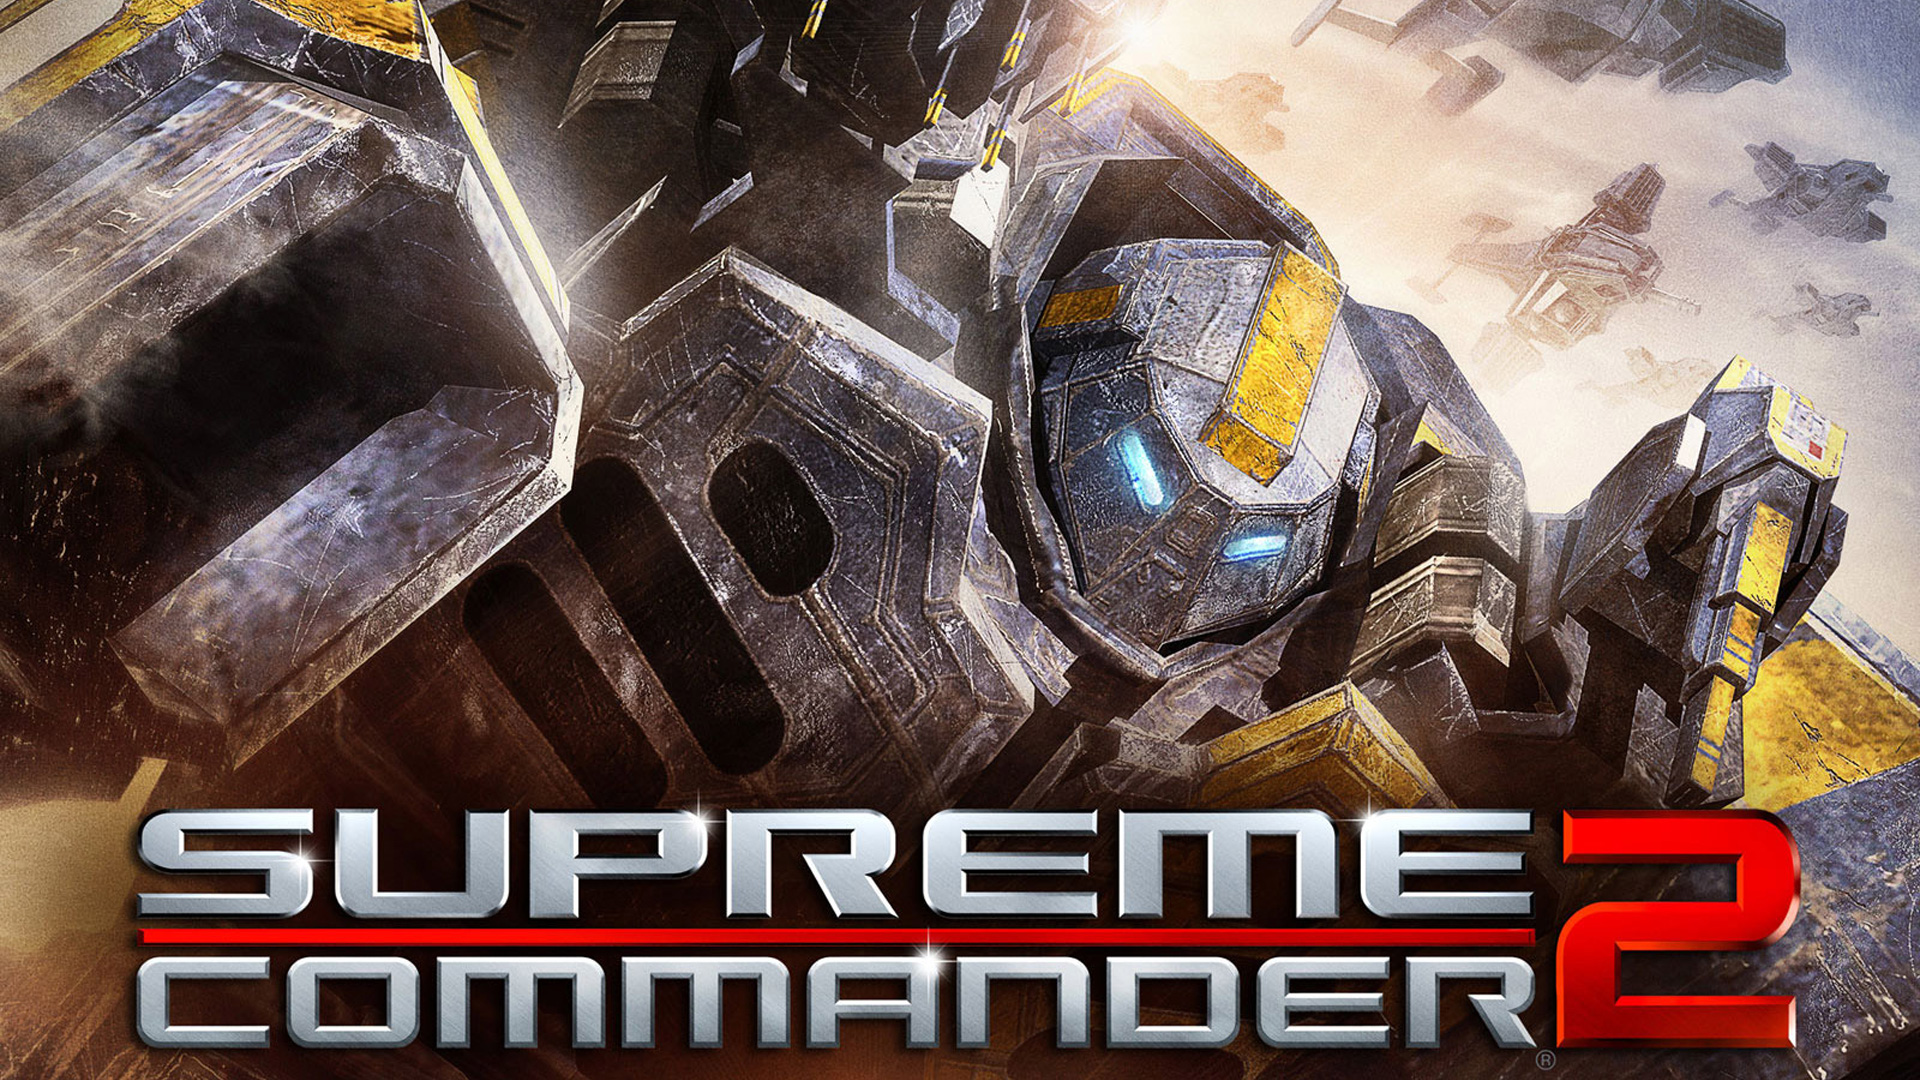 Free Supreme Commander 2 Wallpaper in 1920x1080